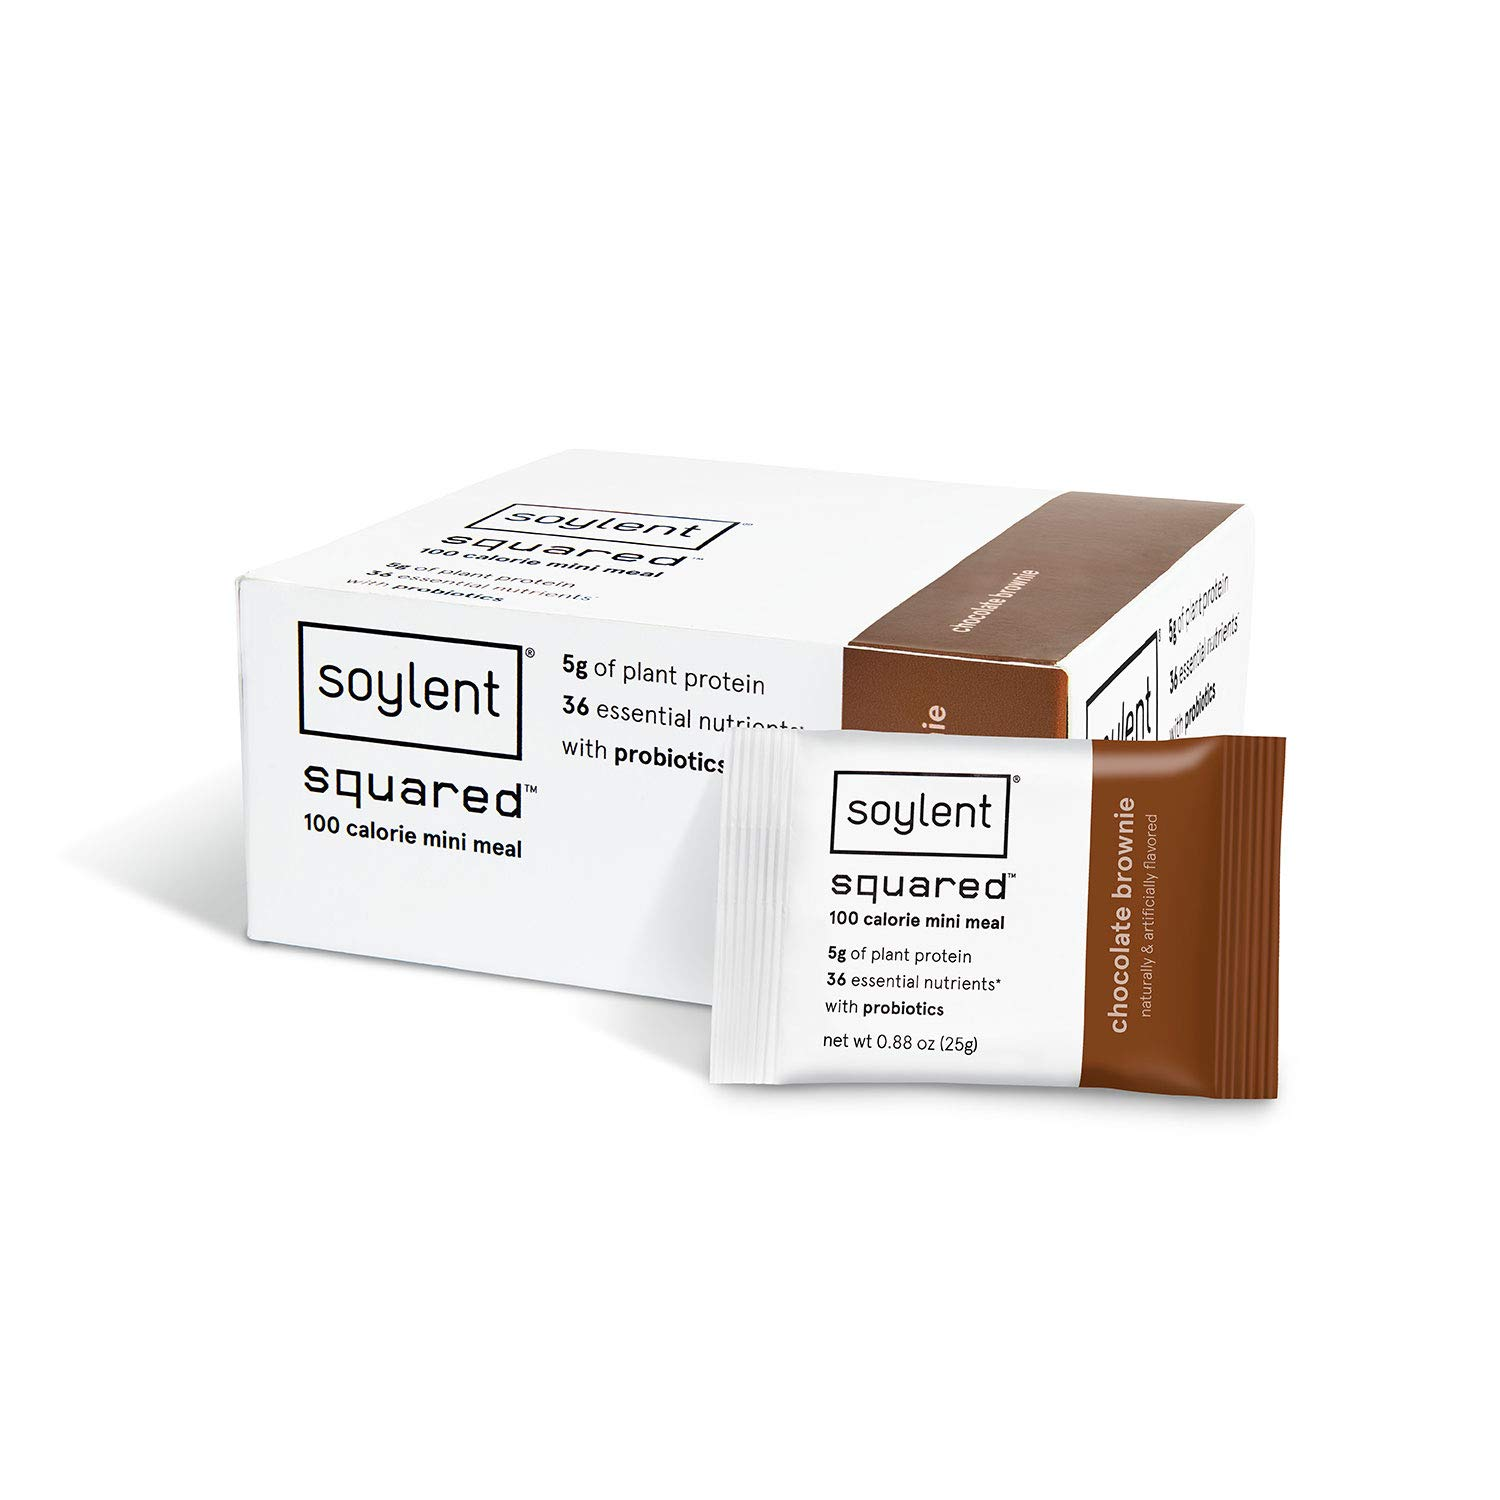 NEW Soylent Squared, 100-Calorie Protein Bar, Chocolate Brownie, 30 Count by Soylent